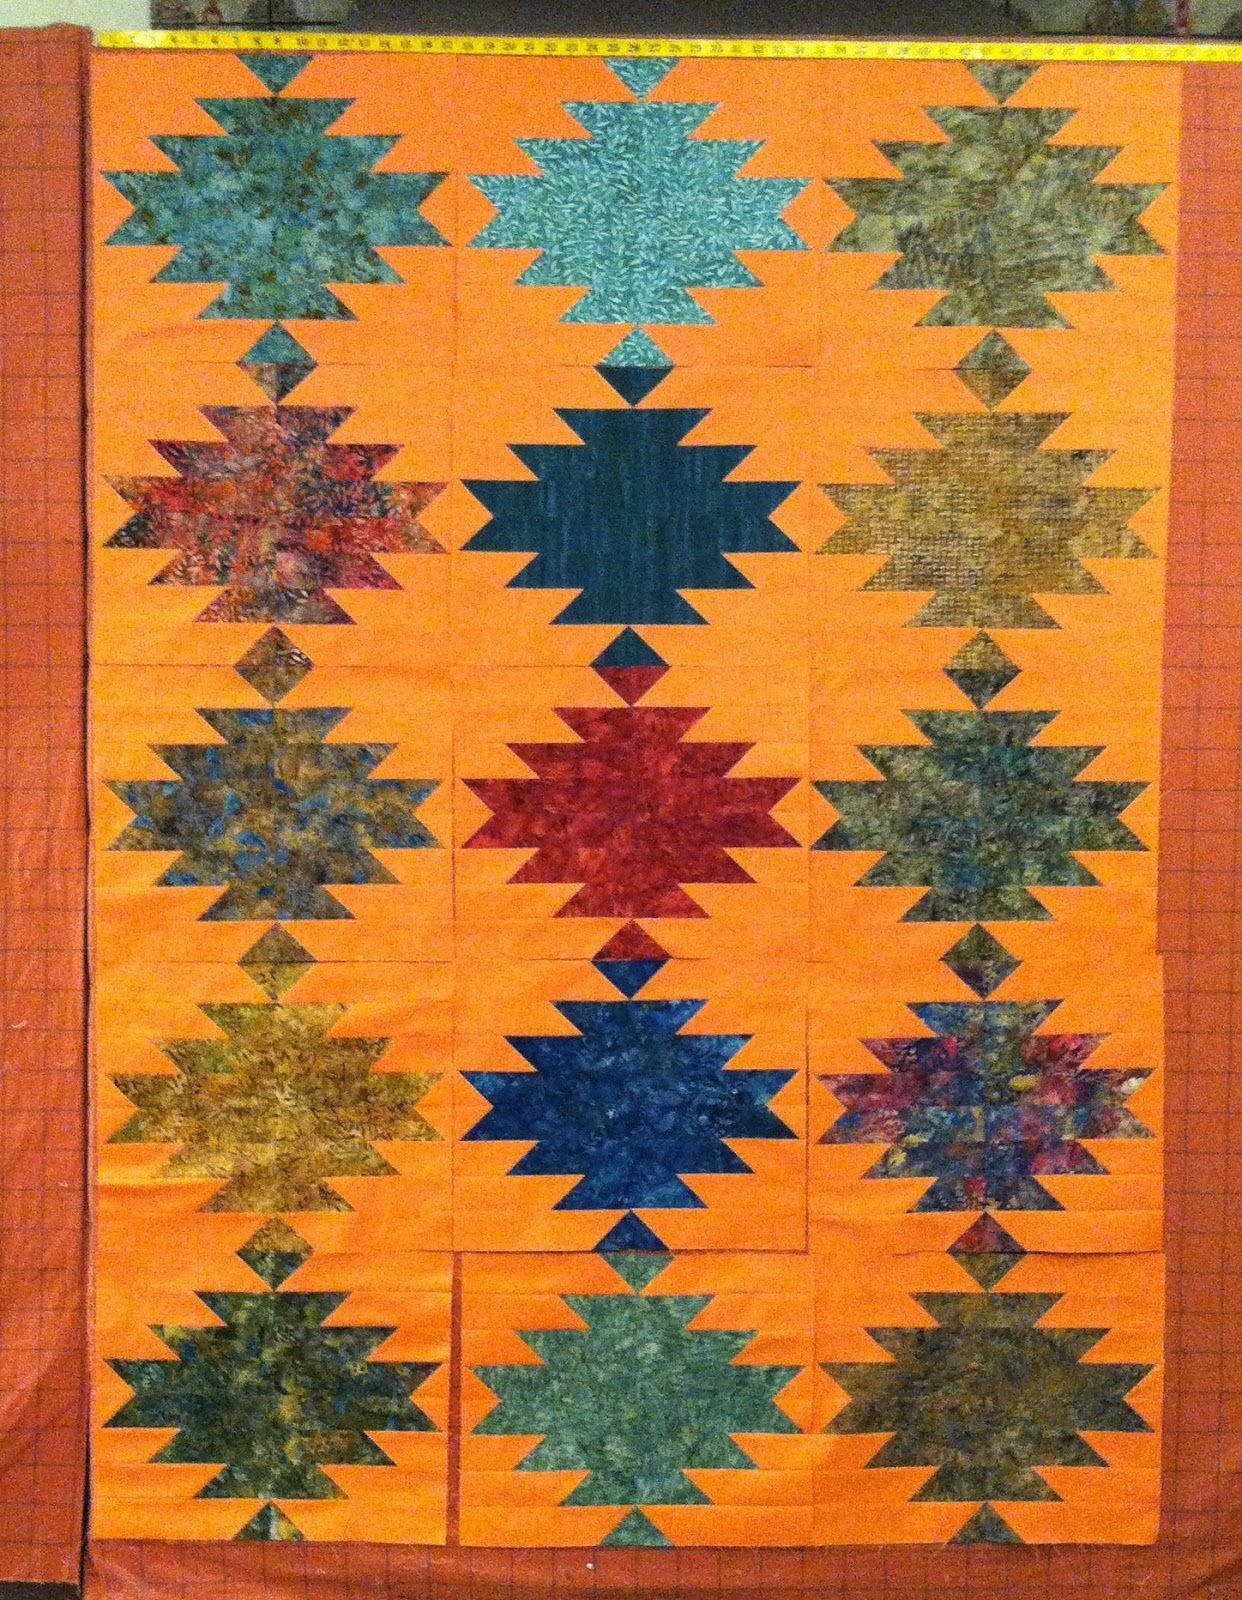 Sonoma Quilt Cut Loose Press Pattern I love the Southwest look